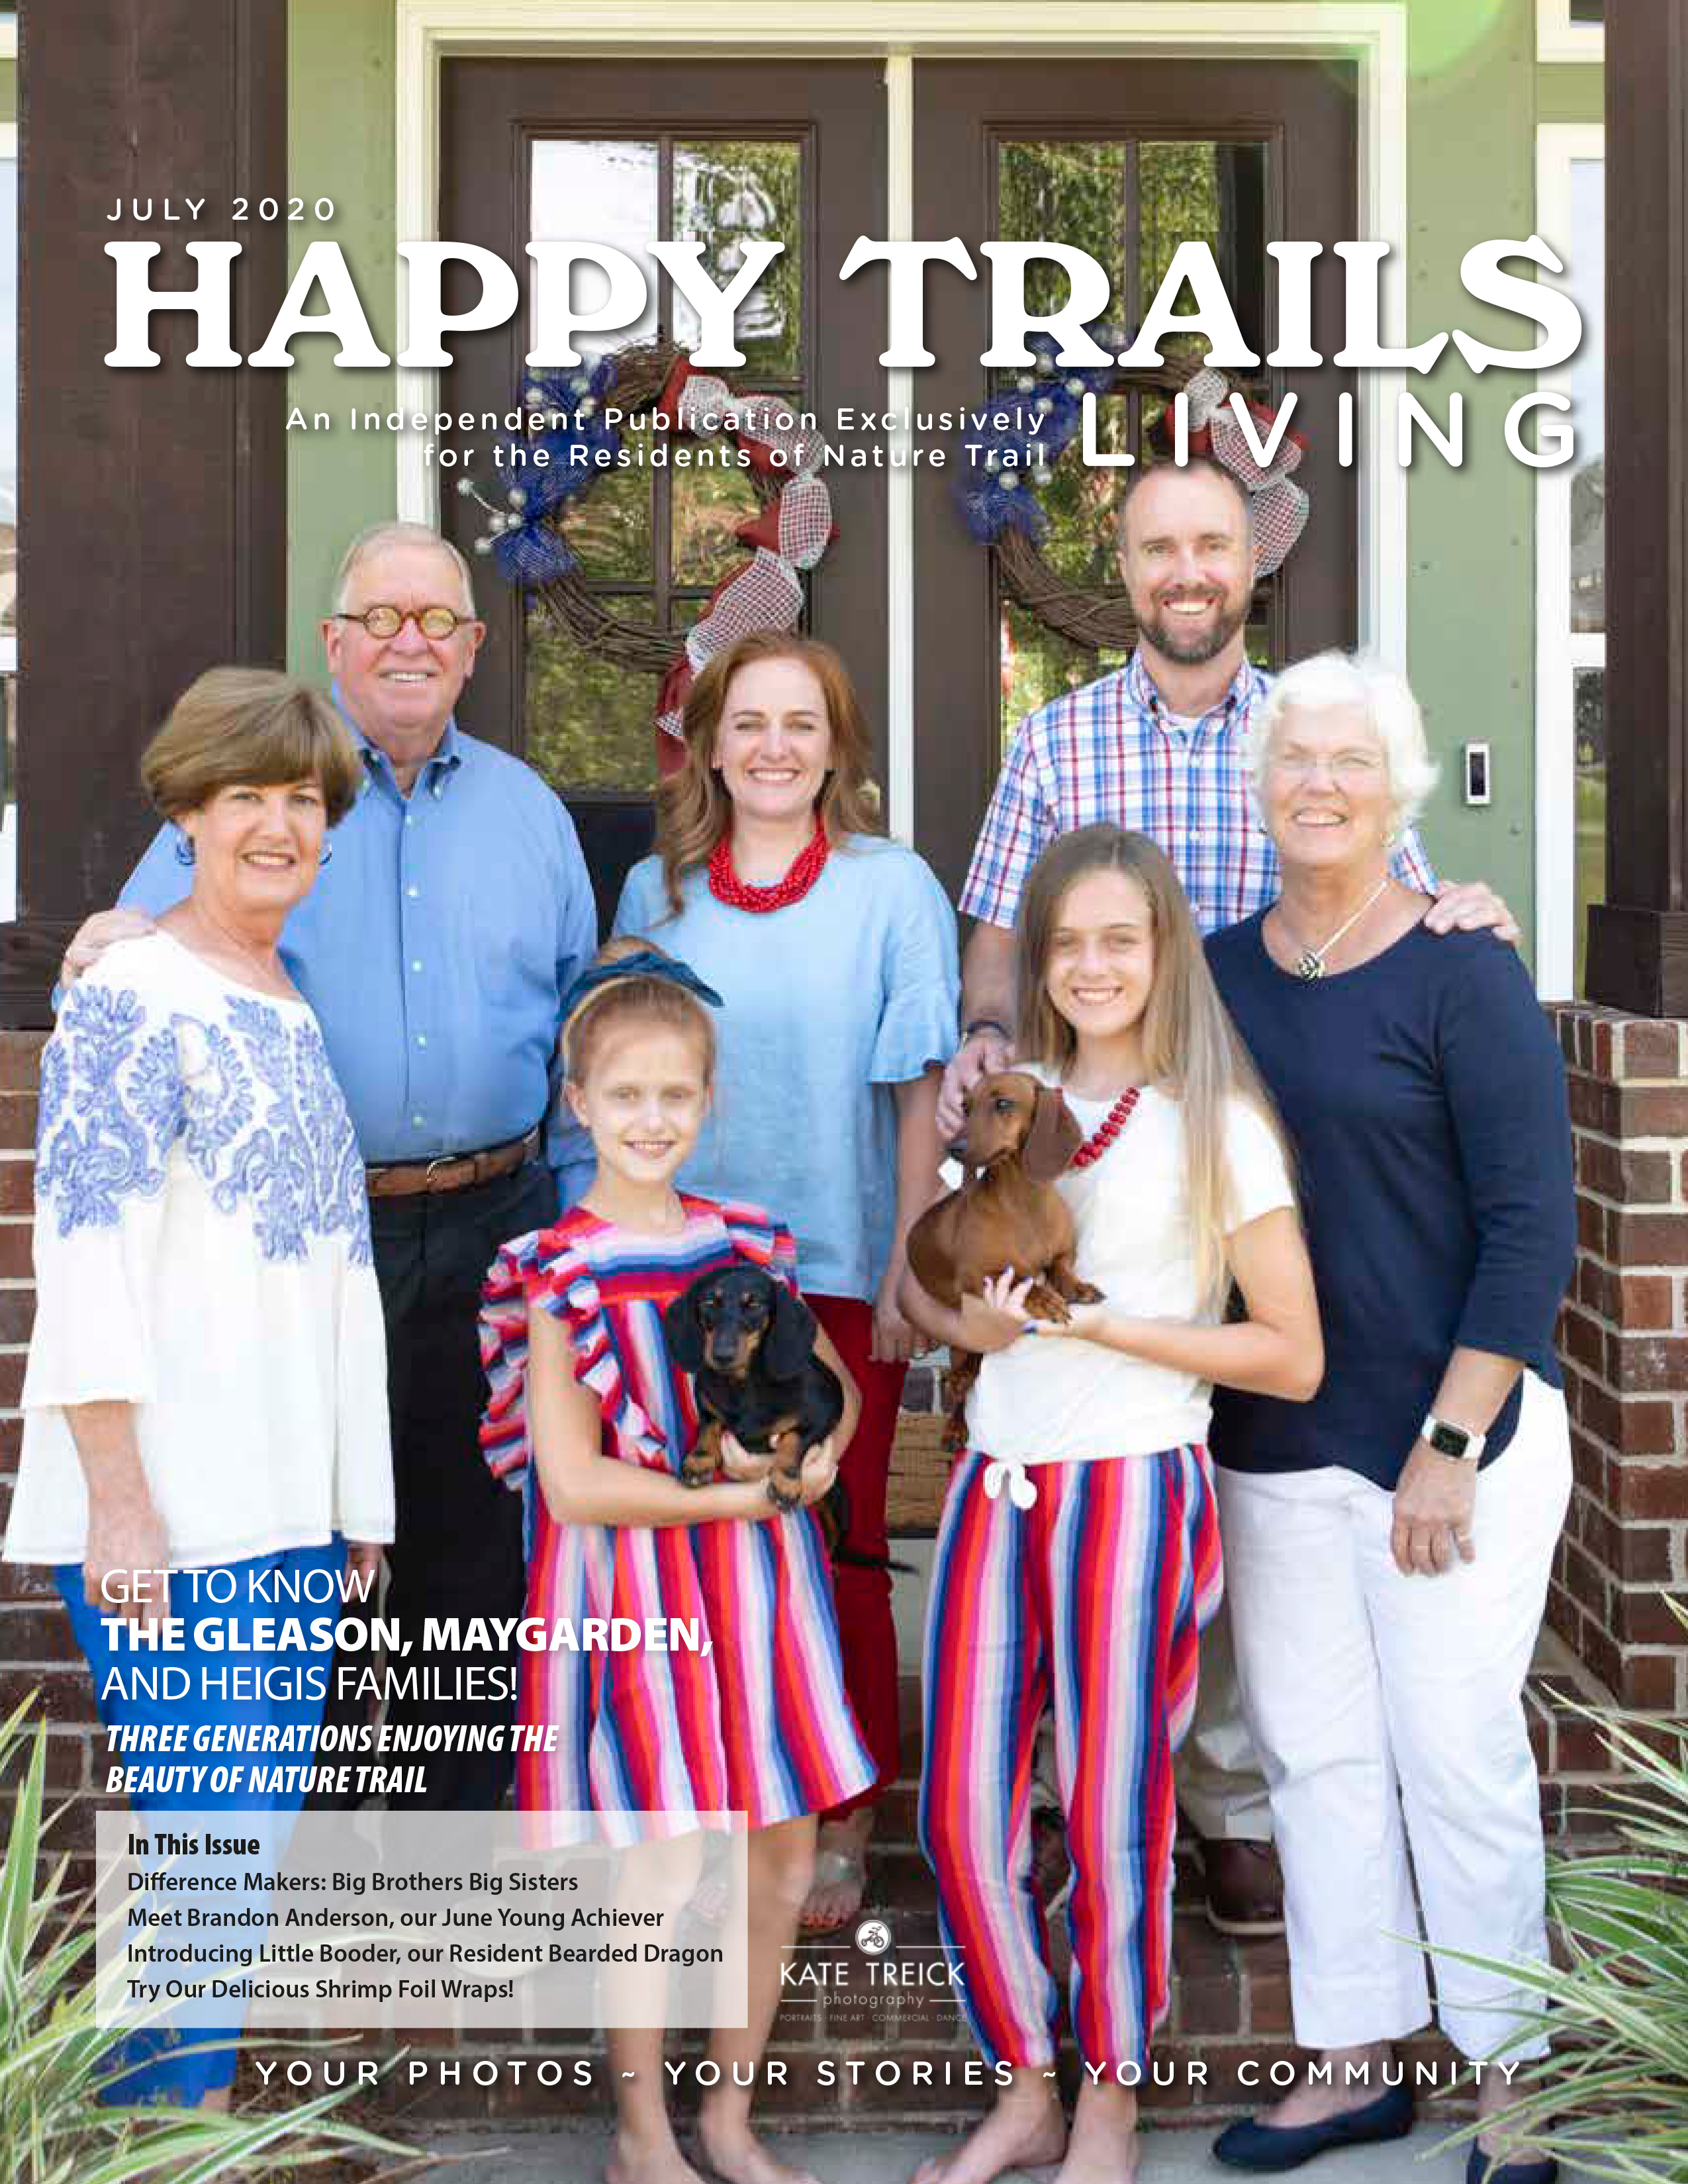 Happy Trails Living Cover for July 2020